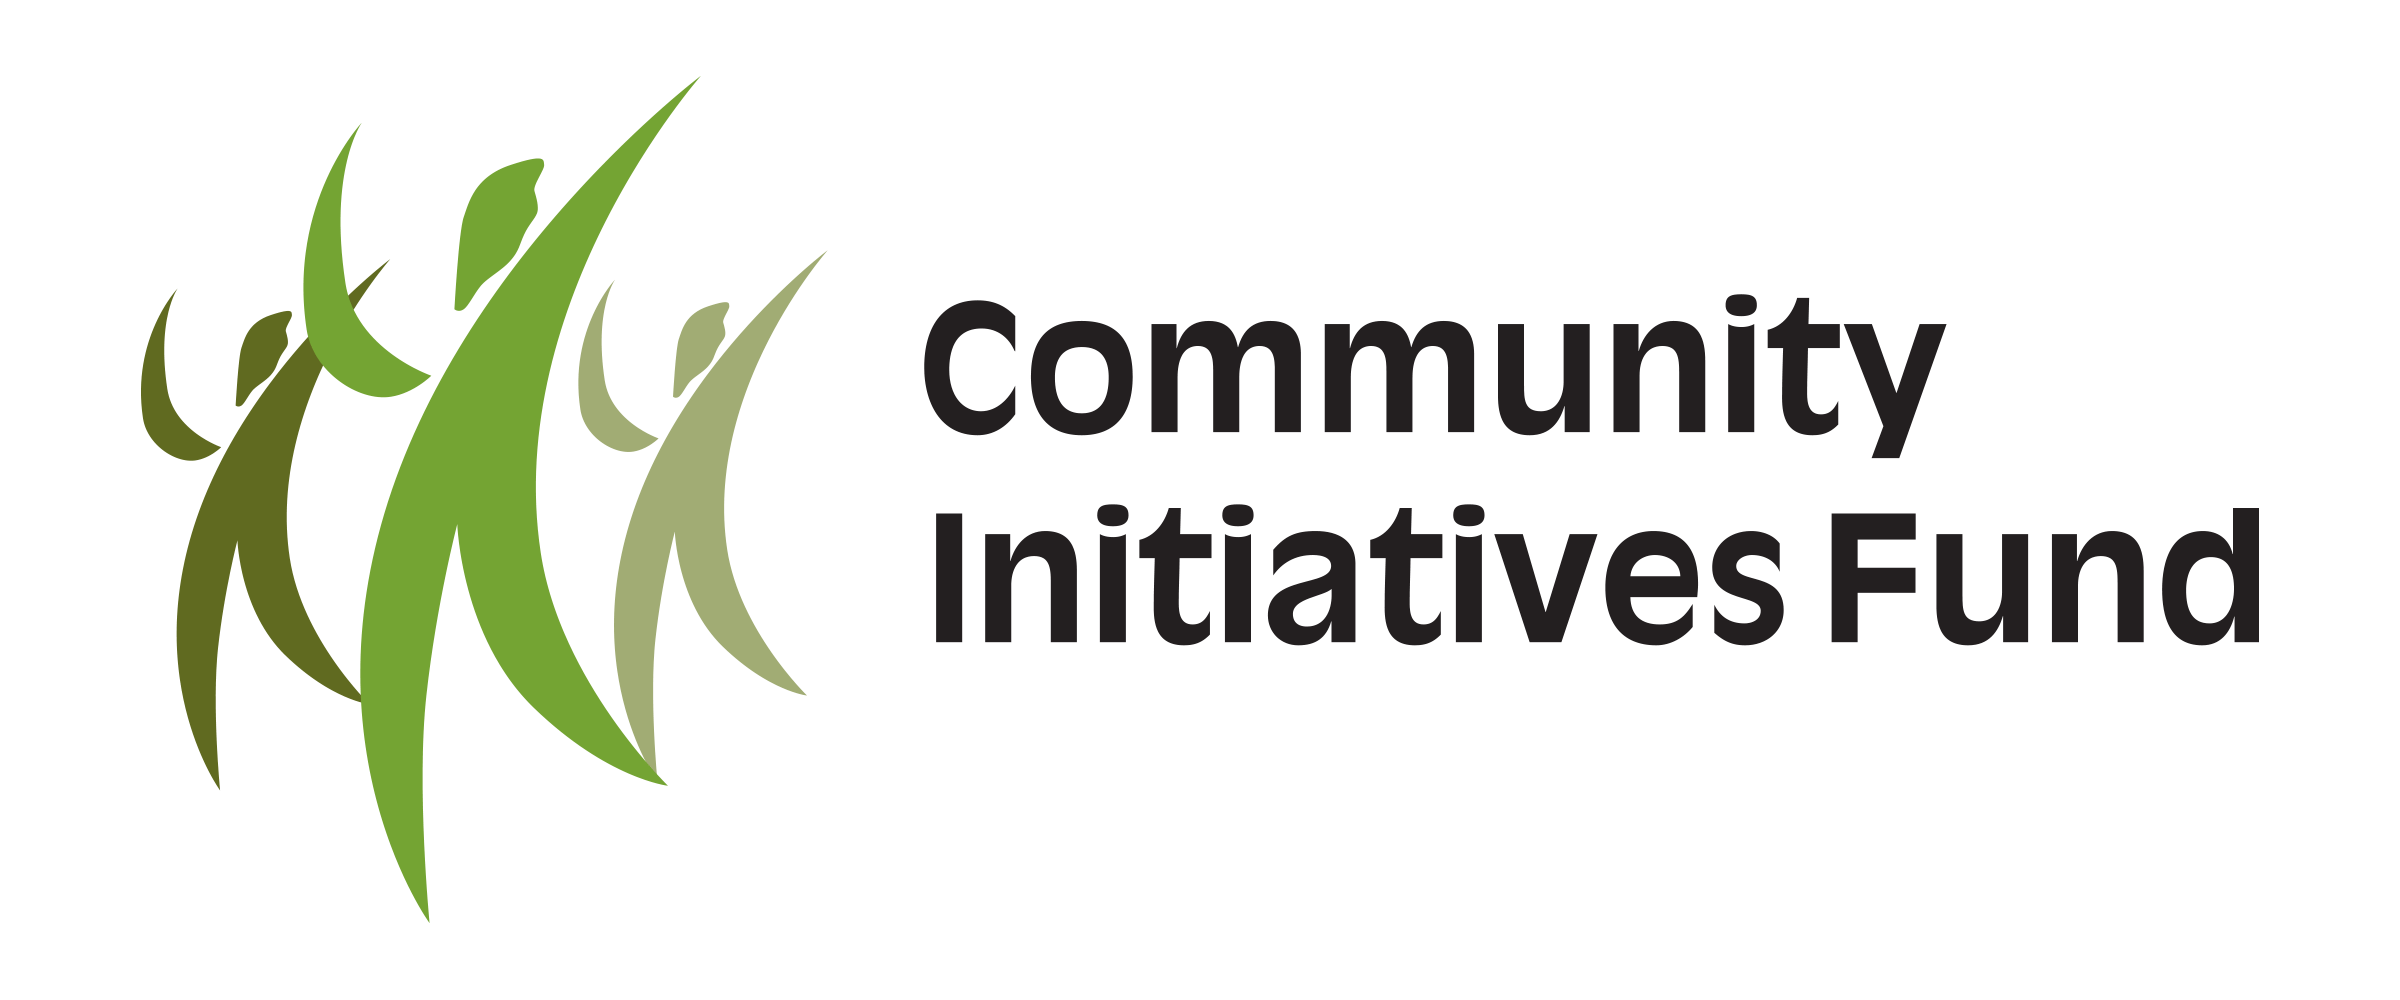 Image result for community initiatives fund logo